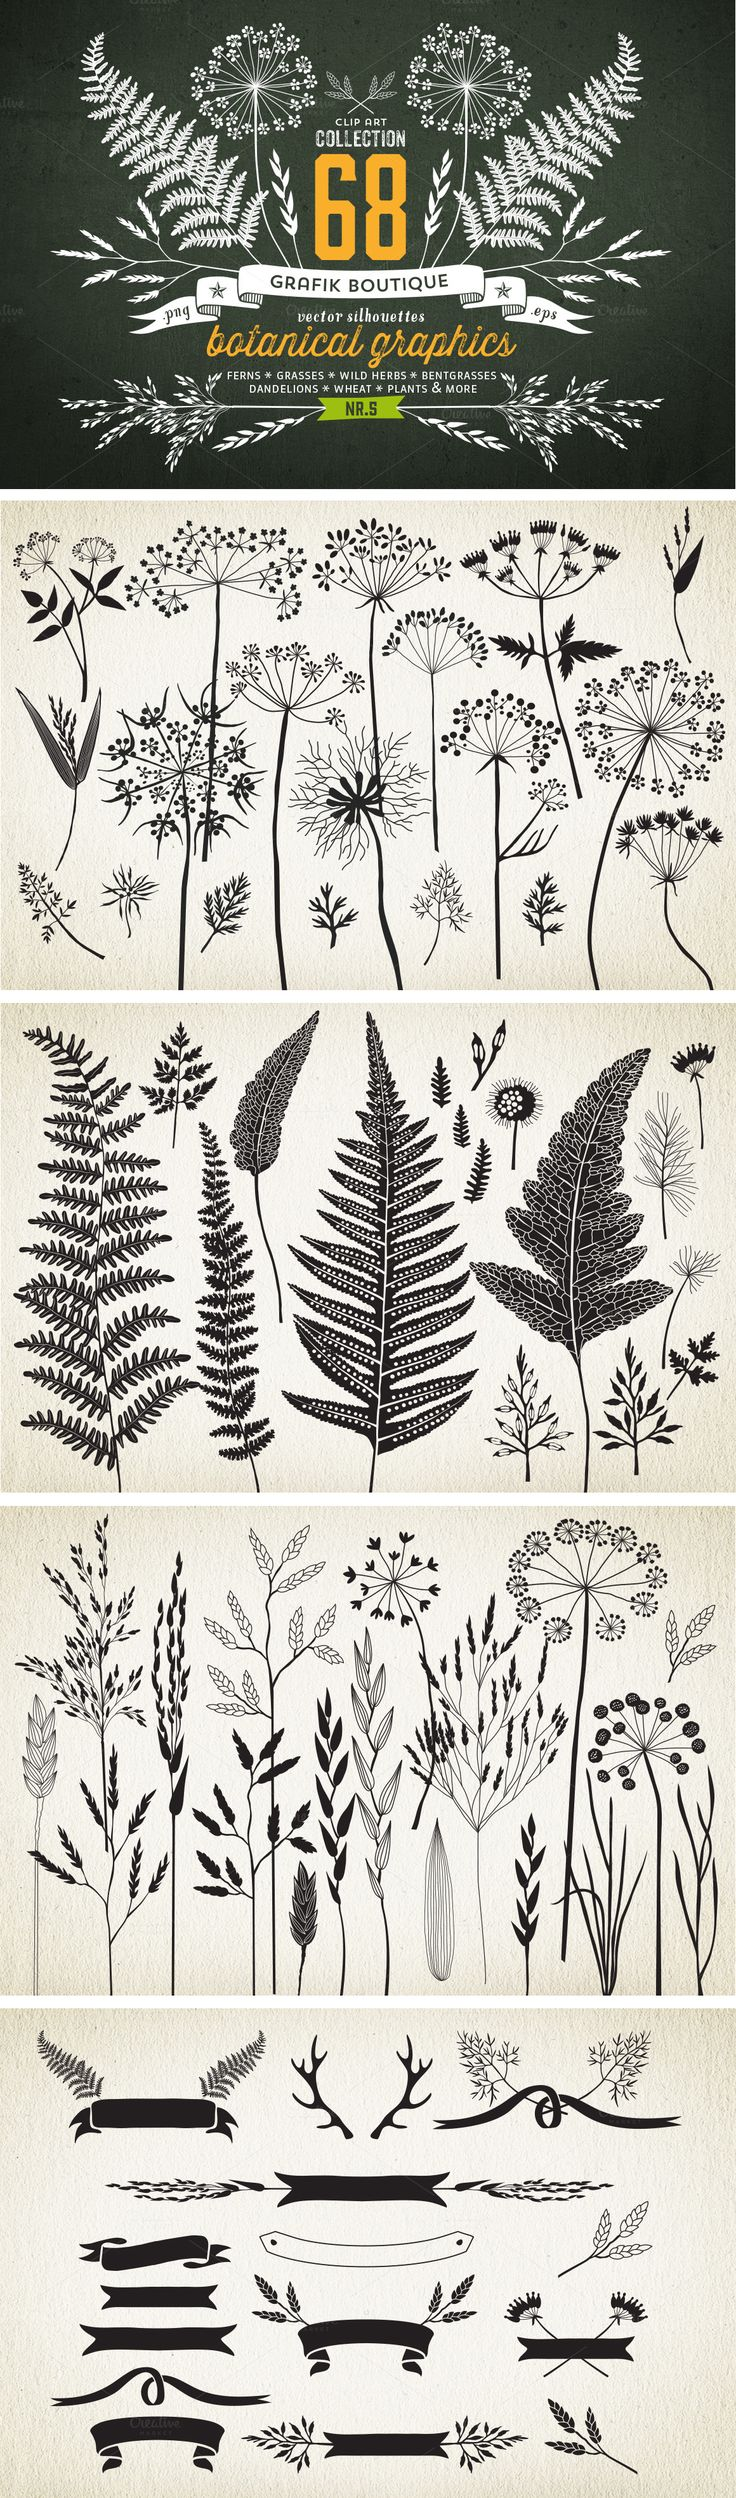 Botanical elements. More than 68